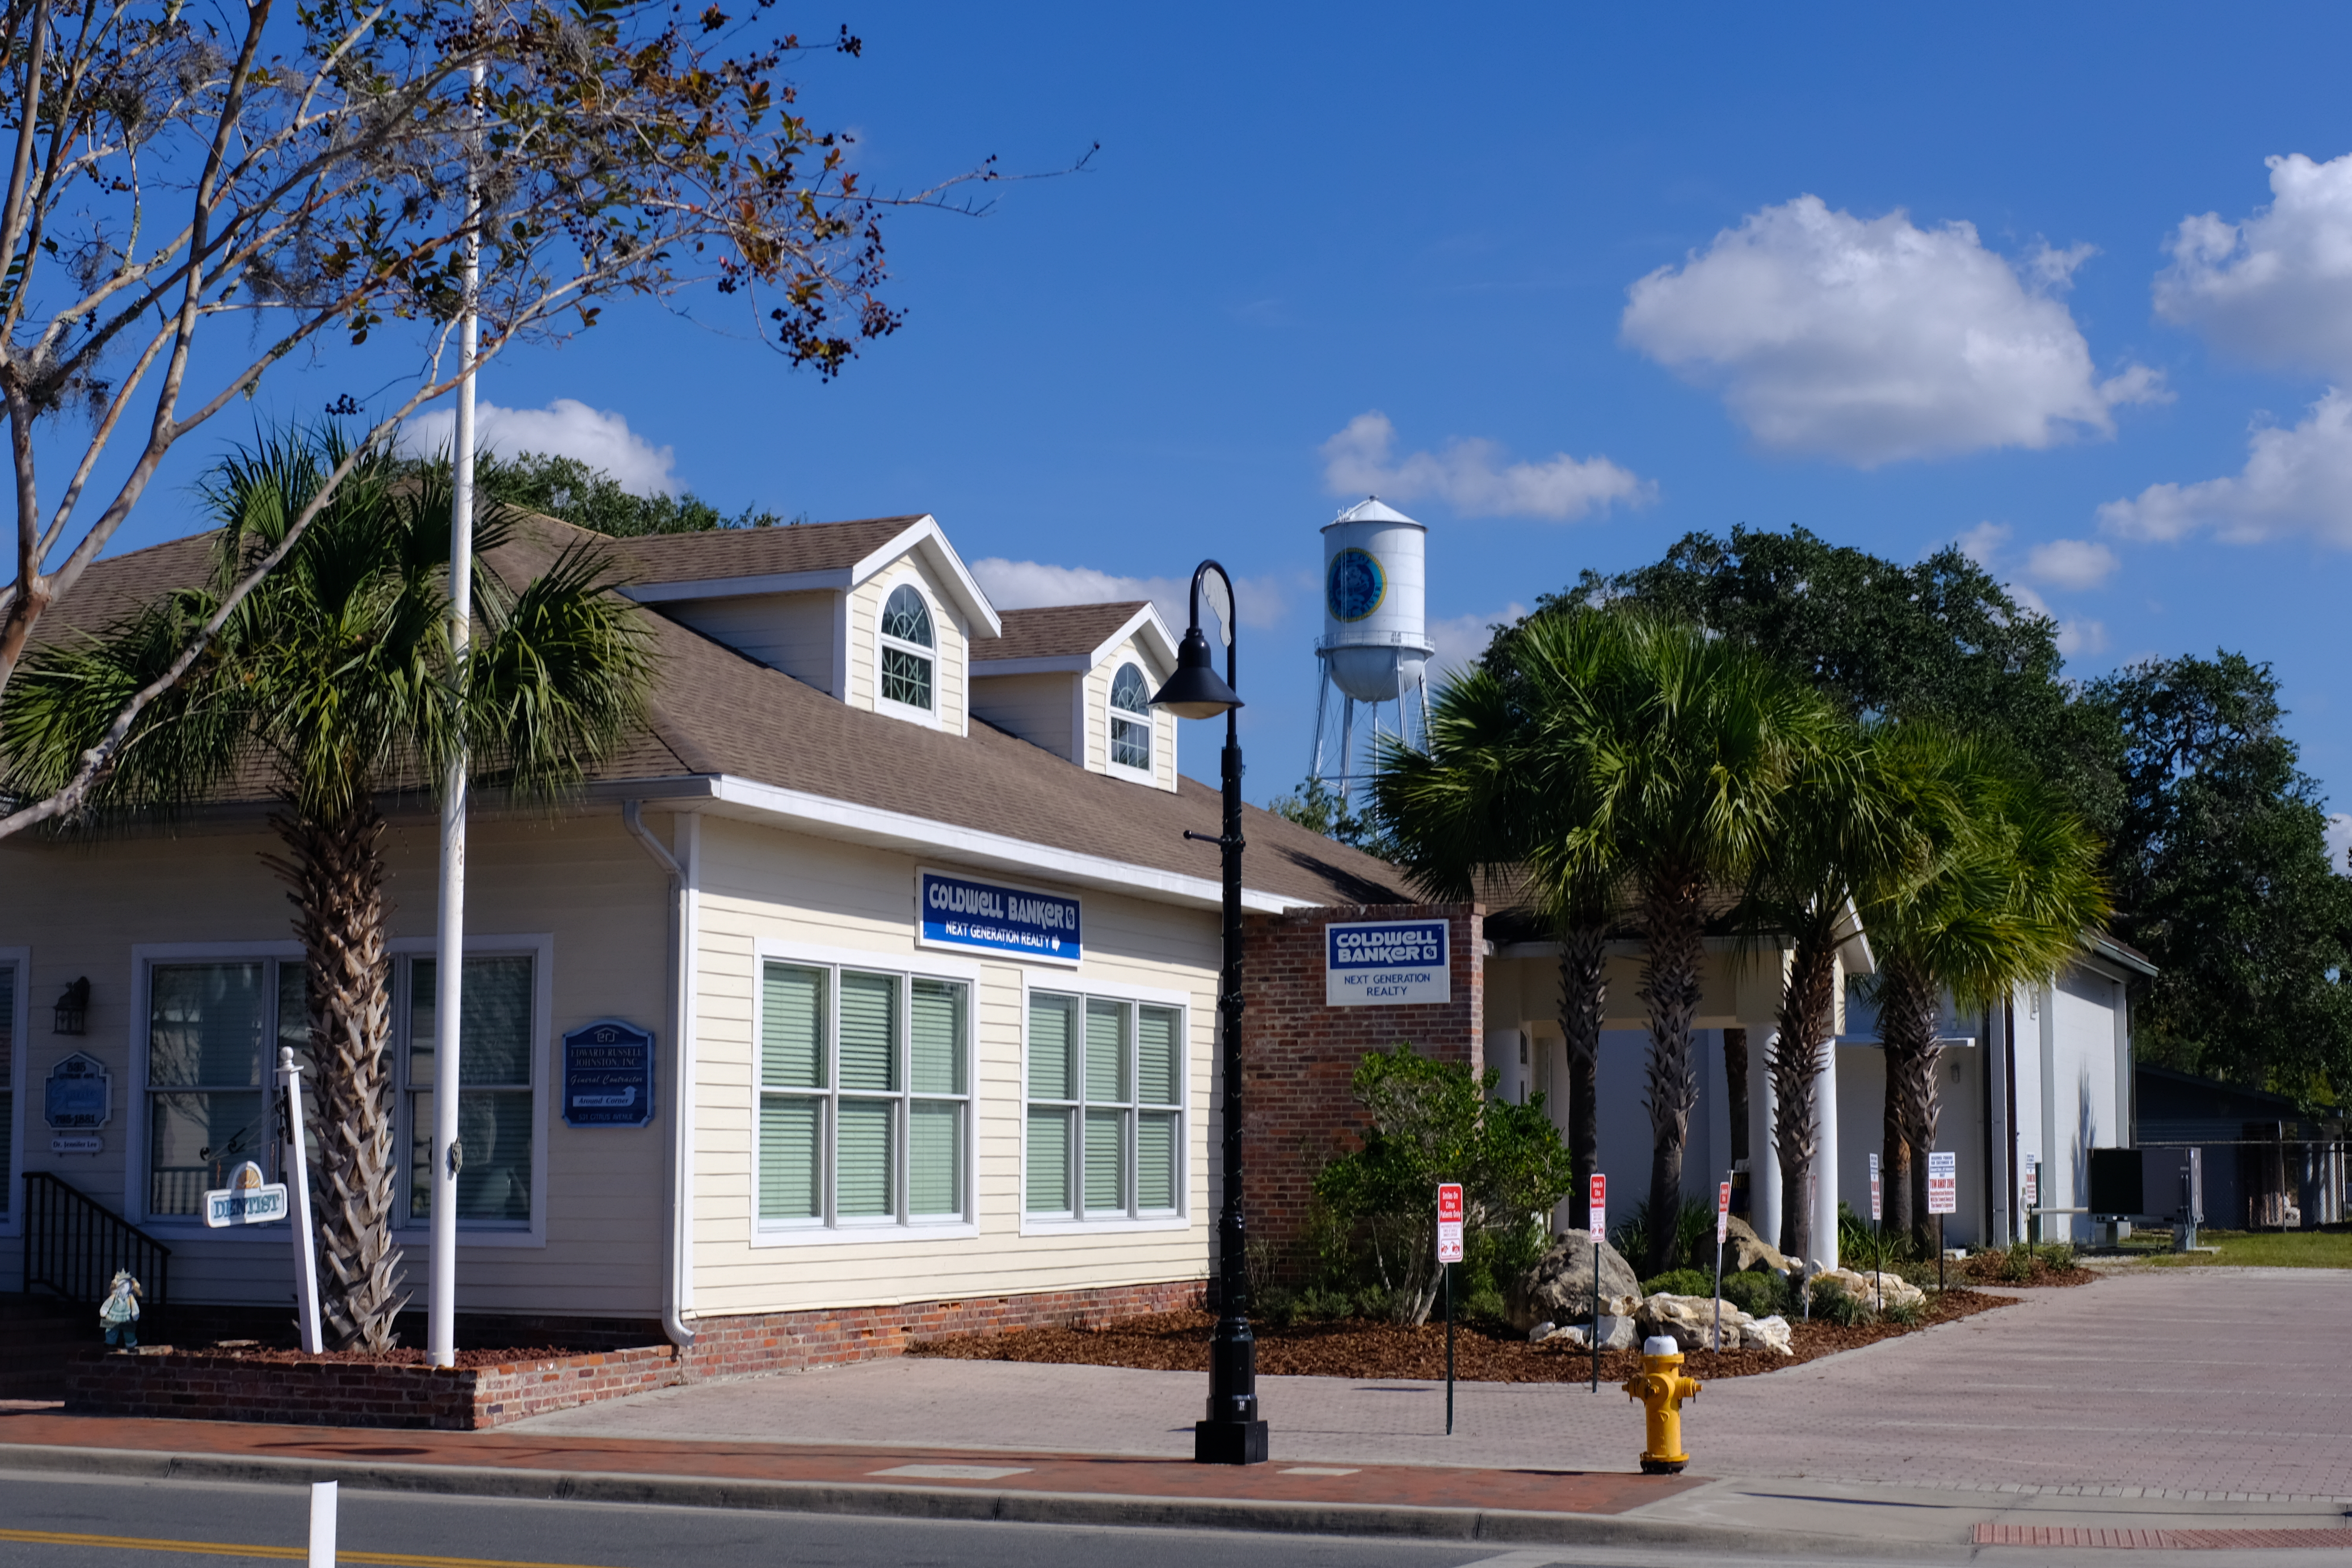 Real Estate Sales in Citrus County - Offices in Crystal